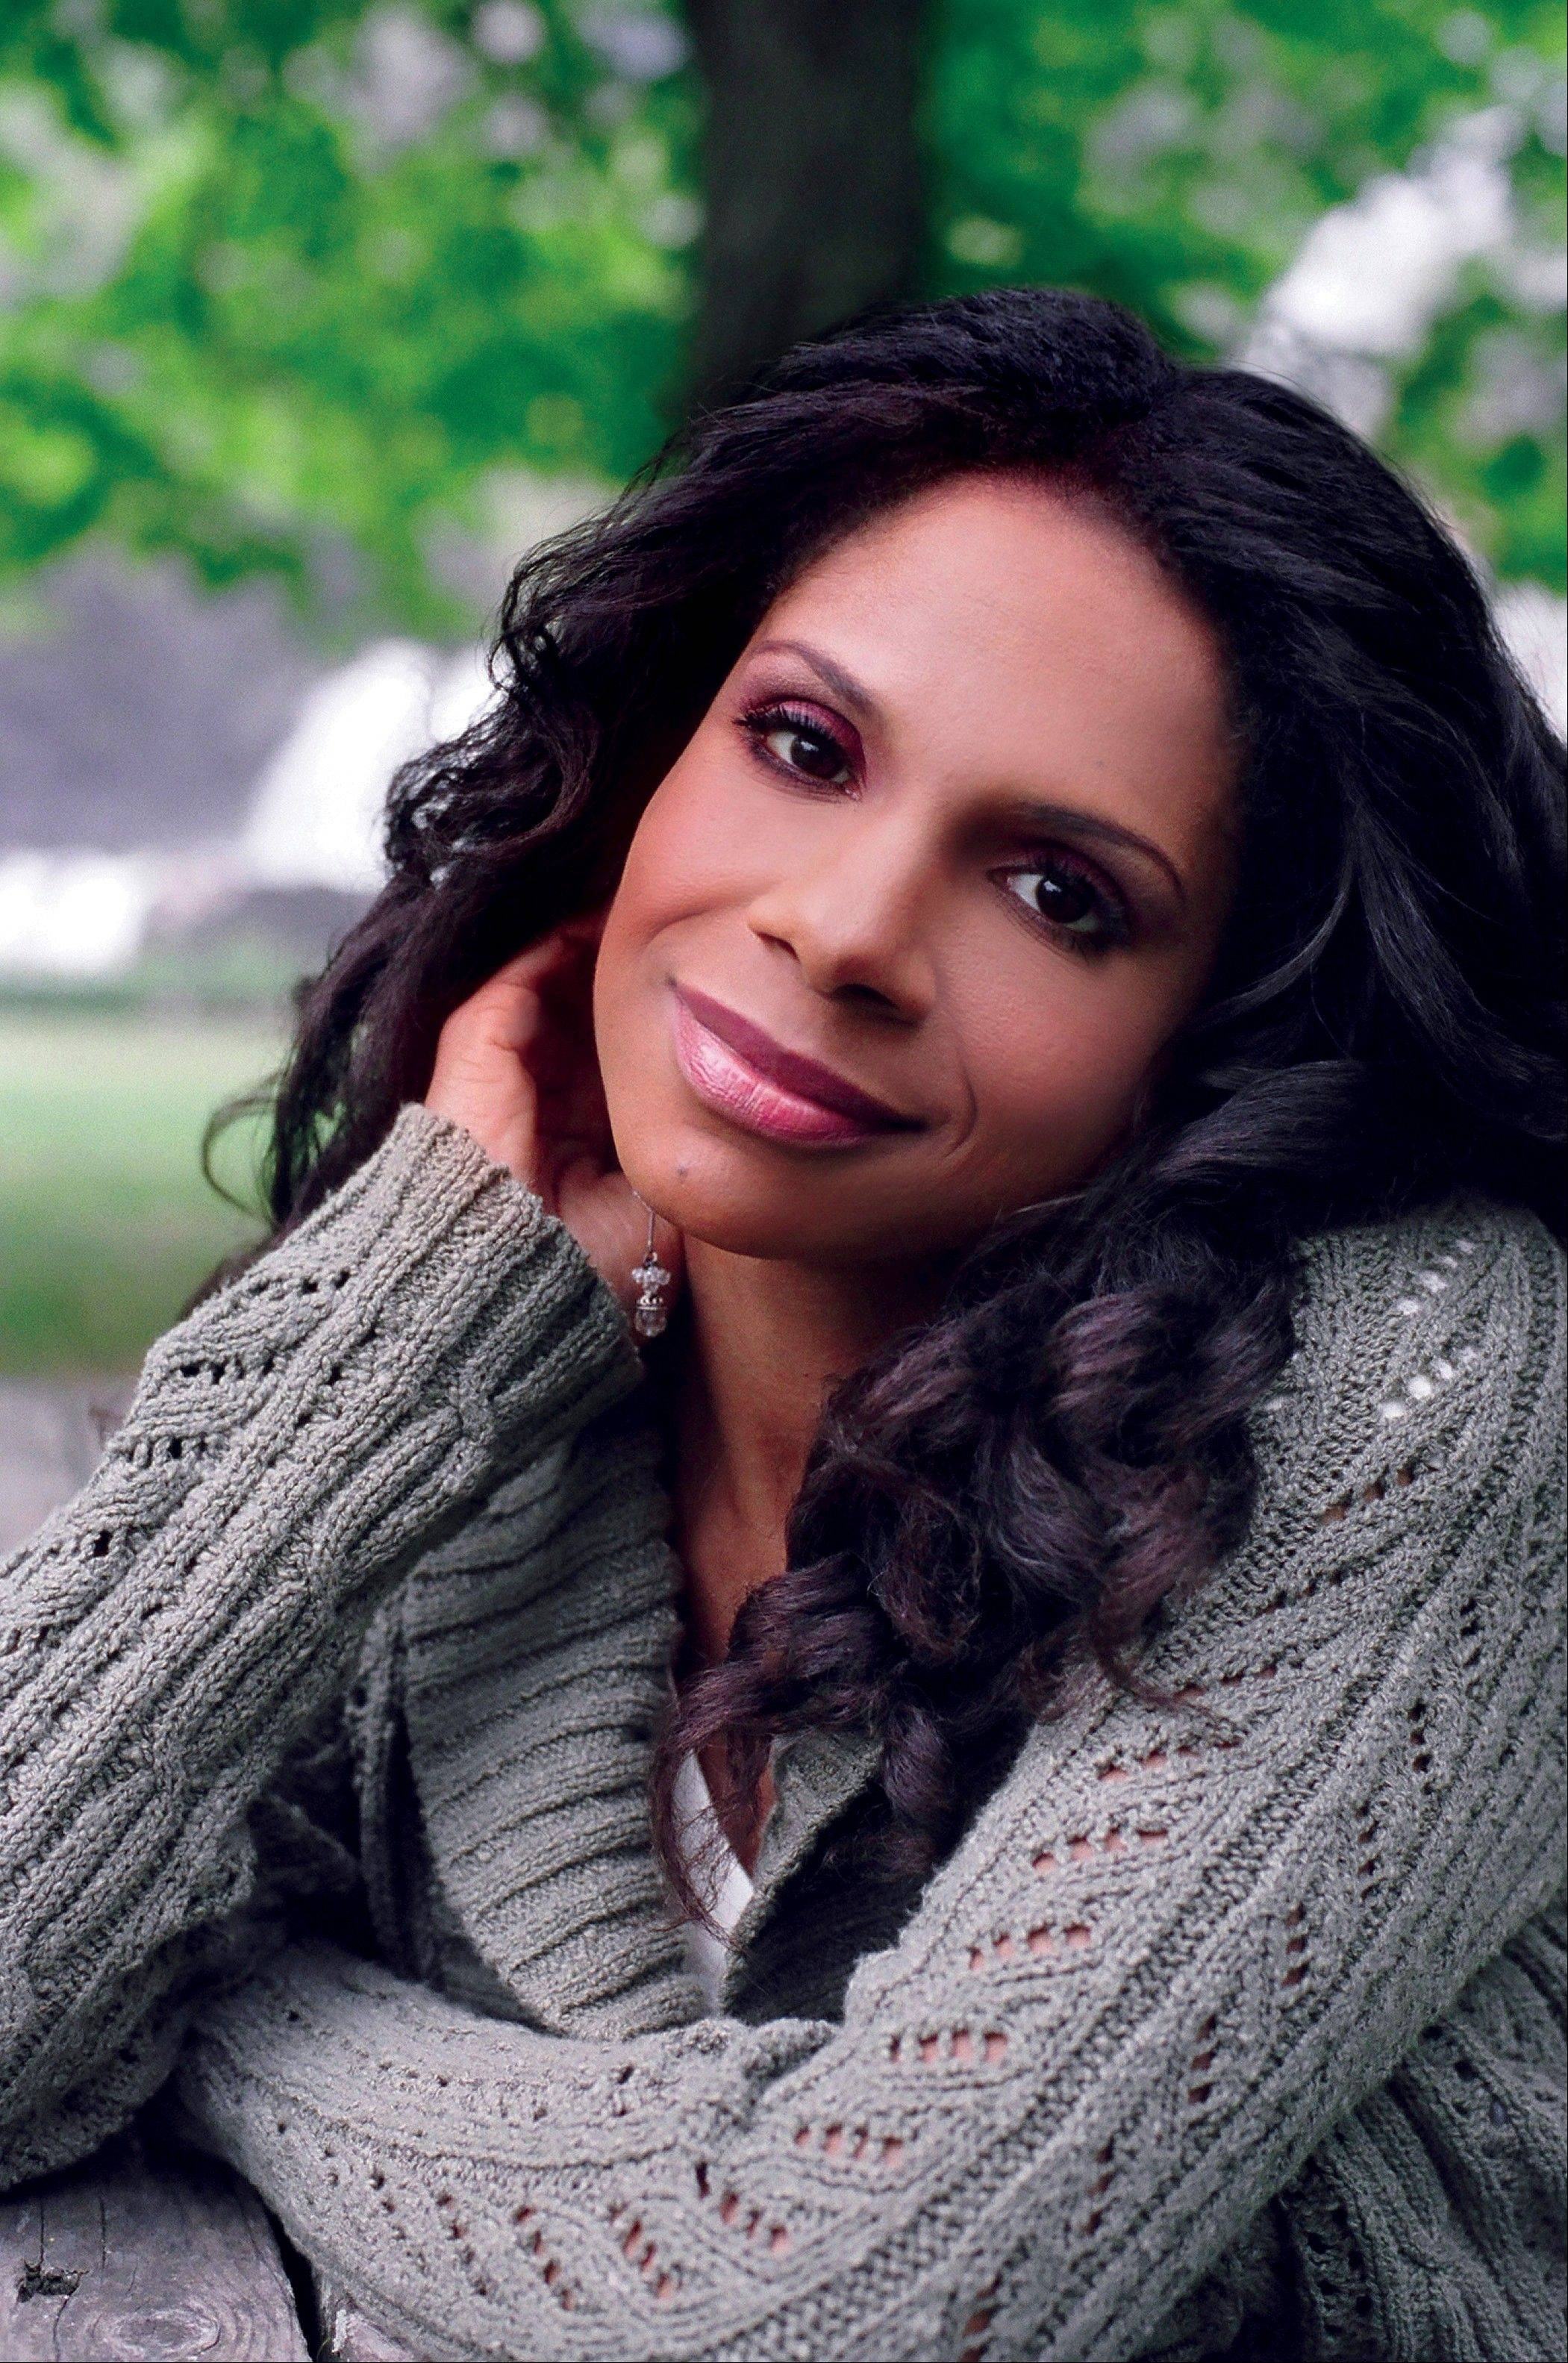 Five-time Tony Award-winner Audra McDonald will sing at Symphony Center in Chicago.